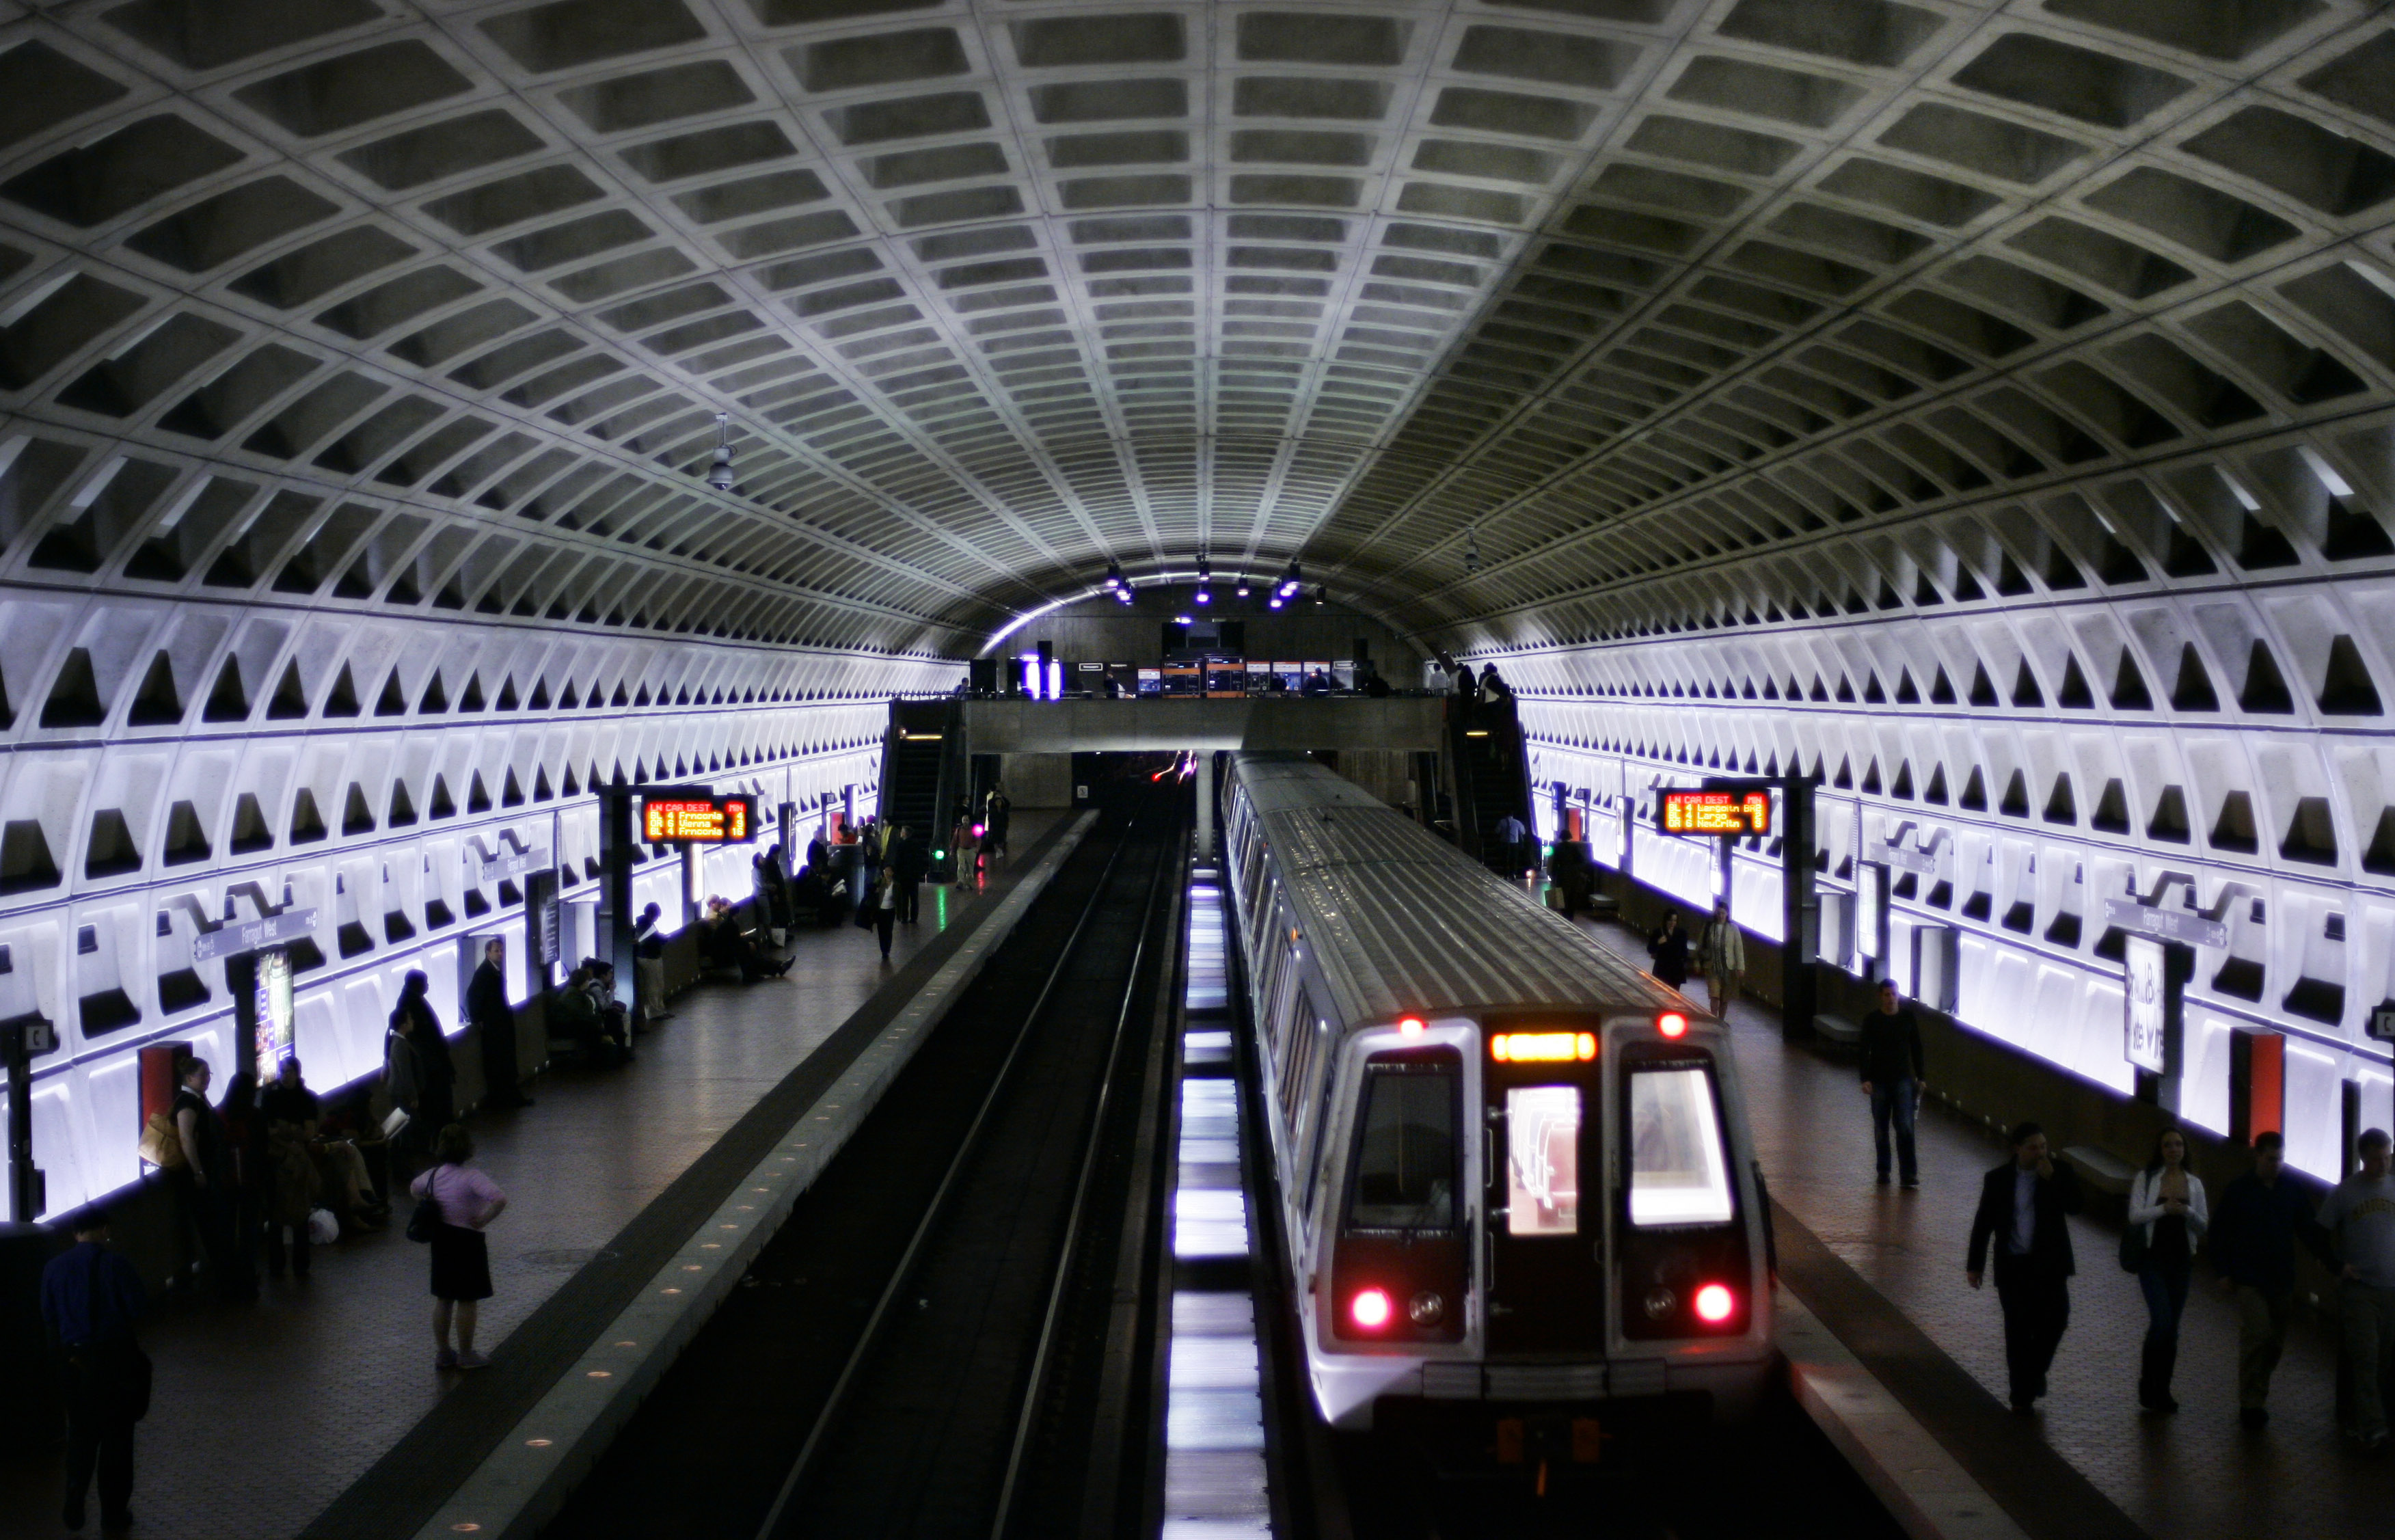 Metro sees across-the-board ridership decline